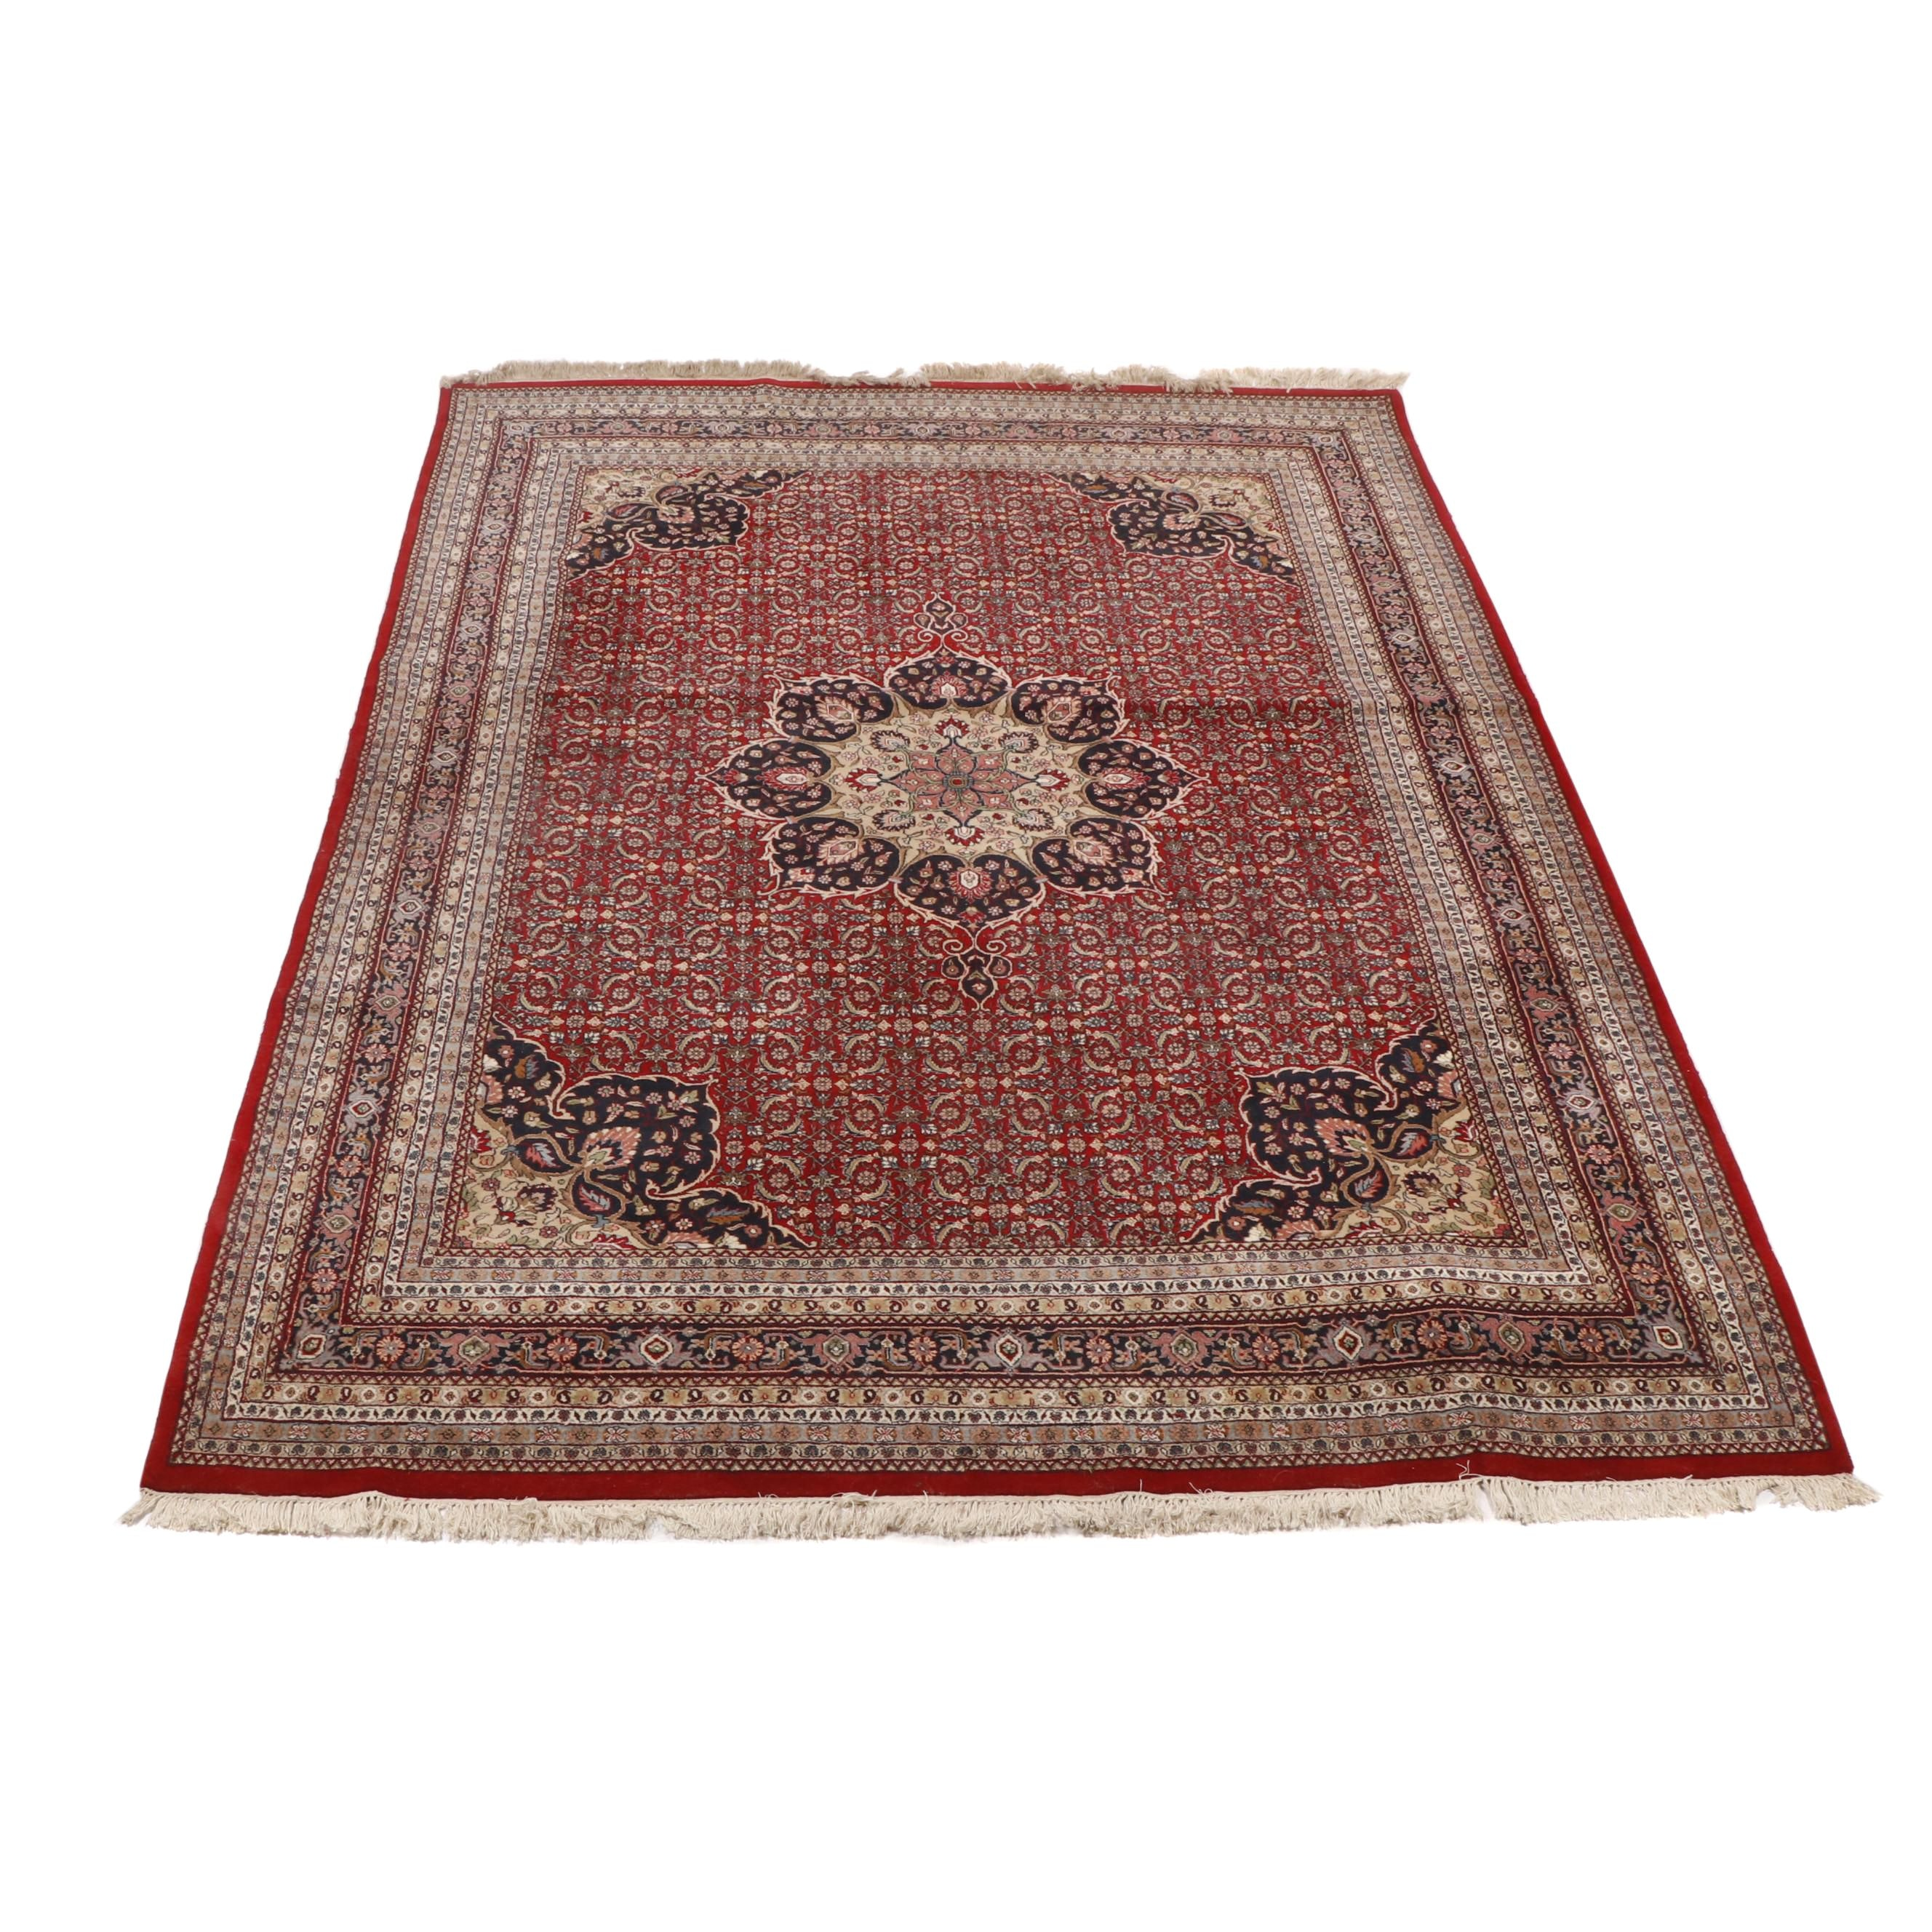 Hand Knotted Indo-Persian Bijar Wool Room Sized Rug